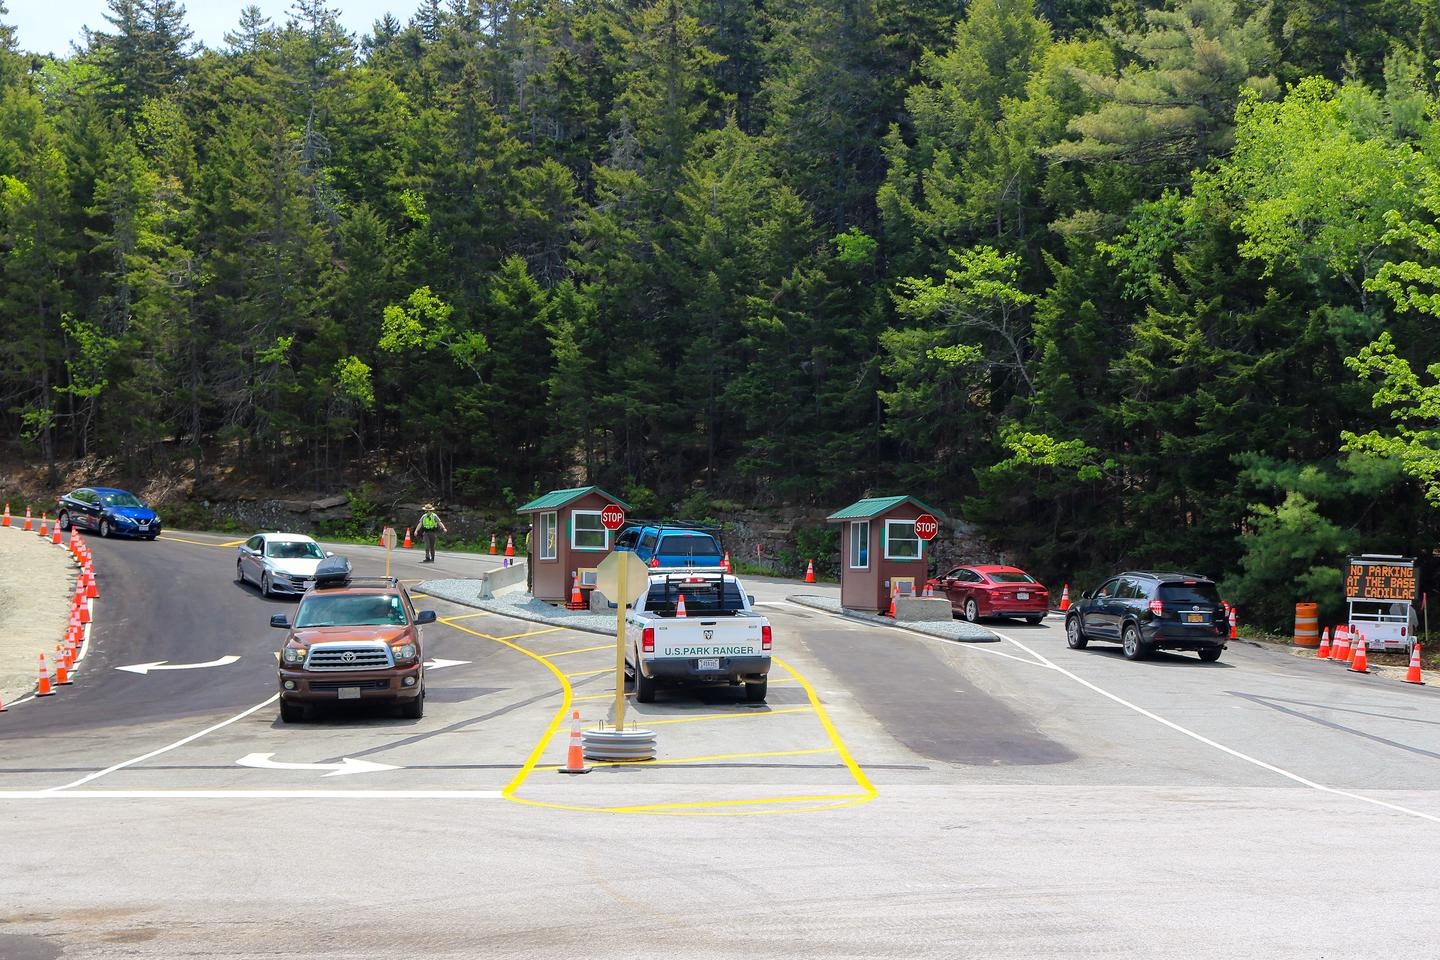 Cars enter and exit the start of a road with two entrance booths.Cadillac Summit Road entrance station.